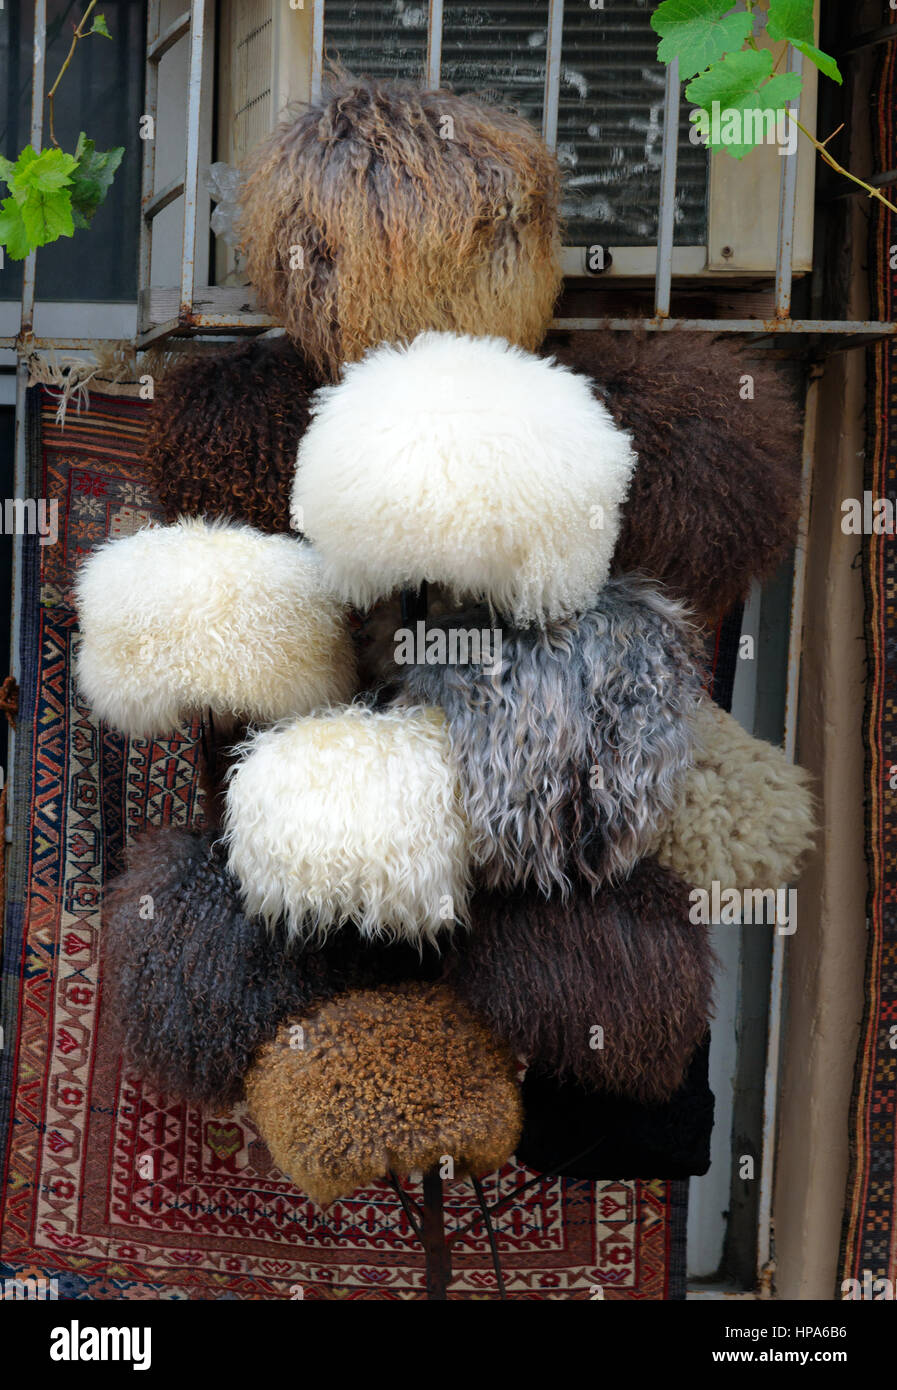 Baku, Azerbaijan - September 10, 2016: Sheep hats in market at Old city, Icheri Sheher is the historical core of - Stock Image